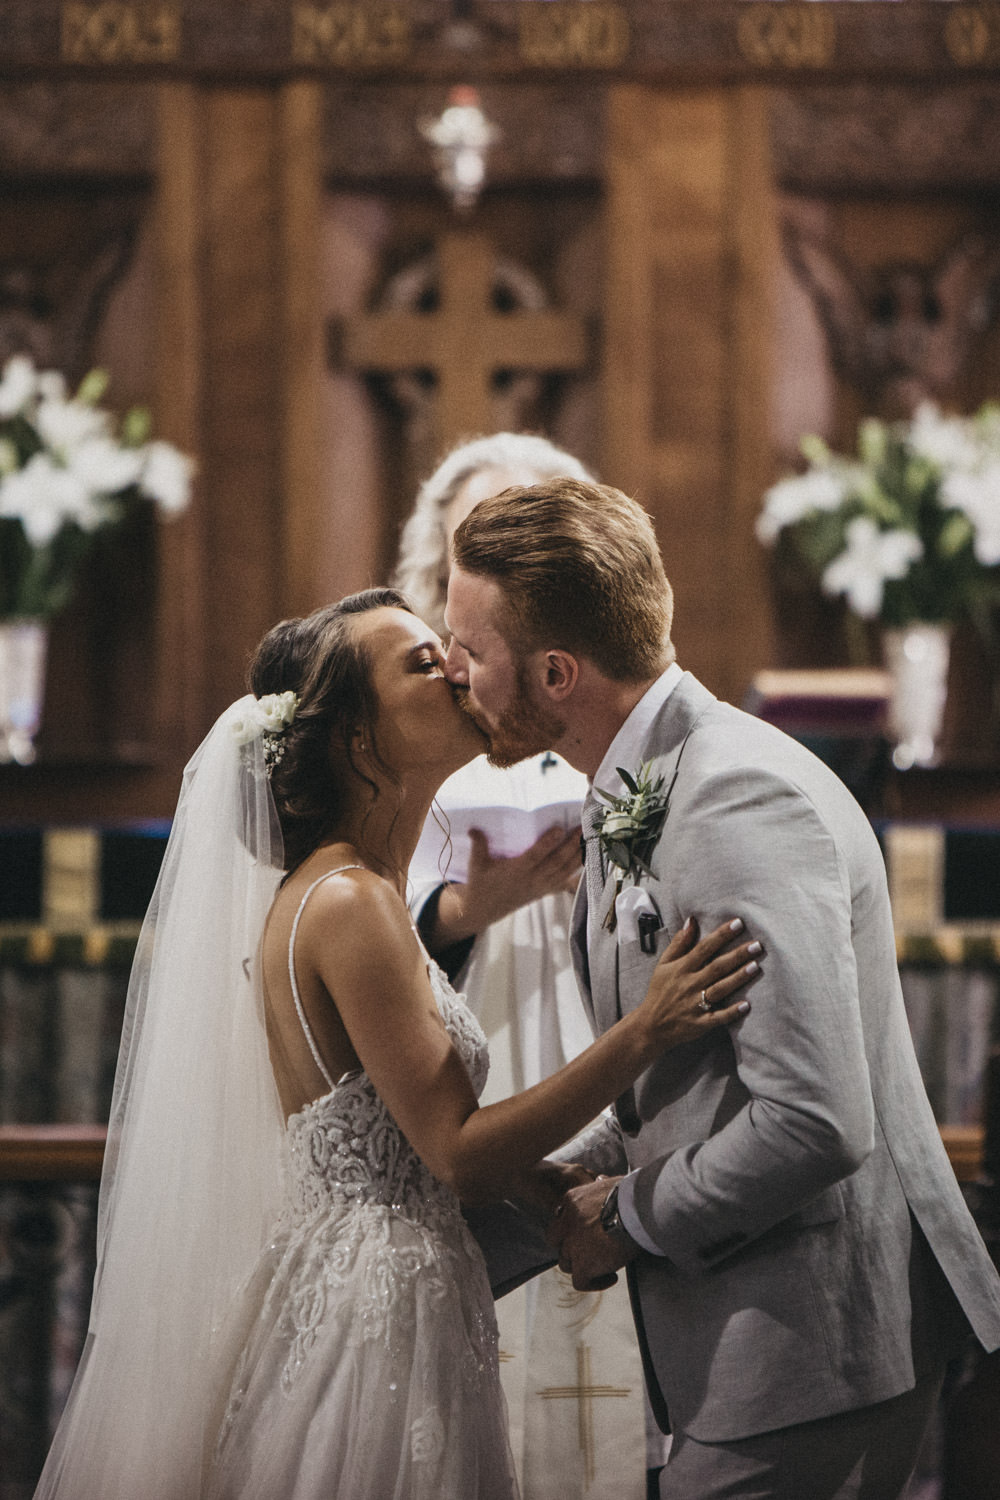 bride and groom first kiss as husband and wife in church ceremony